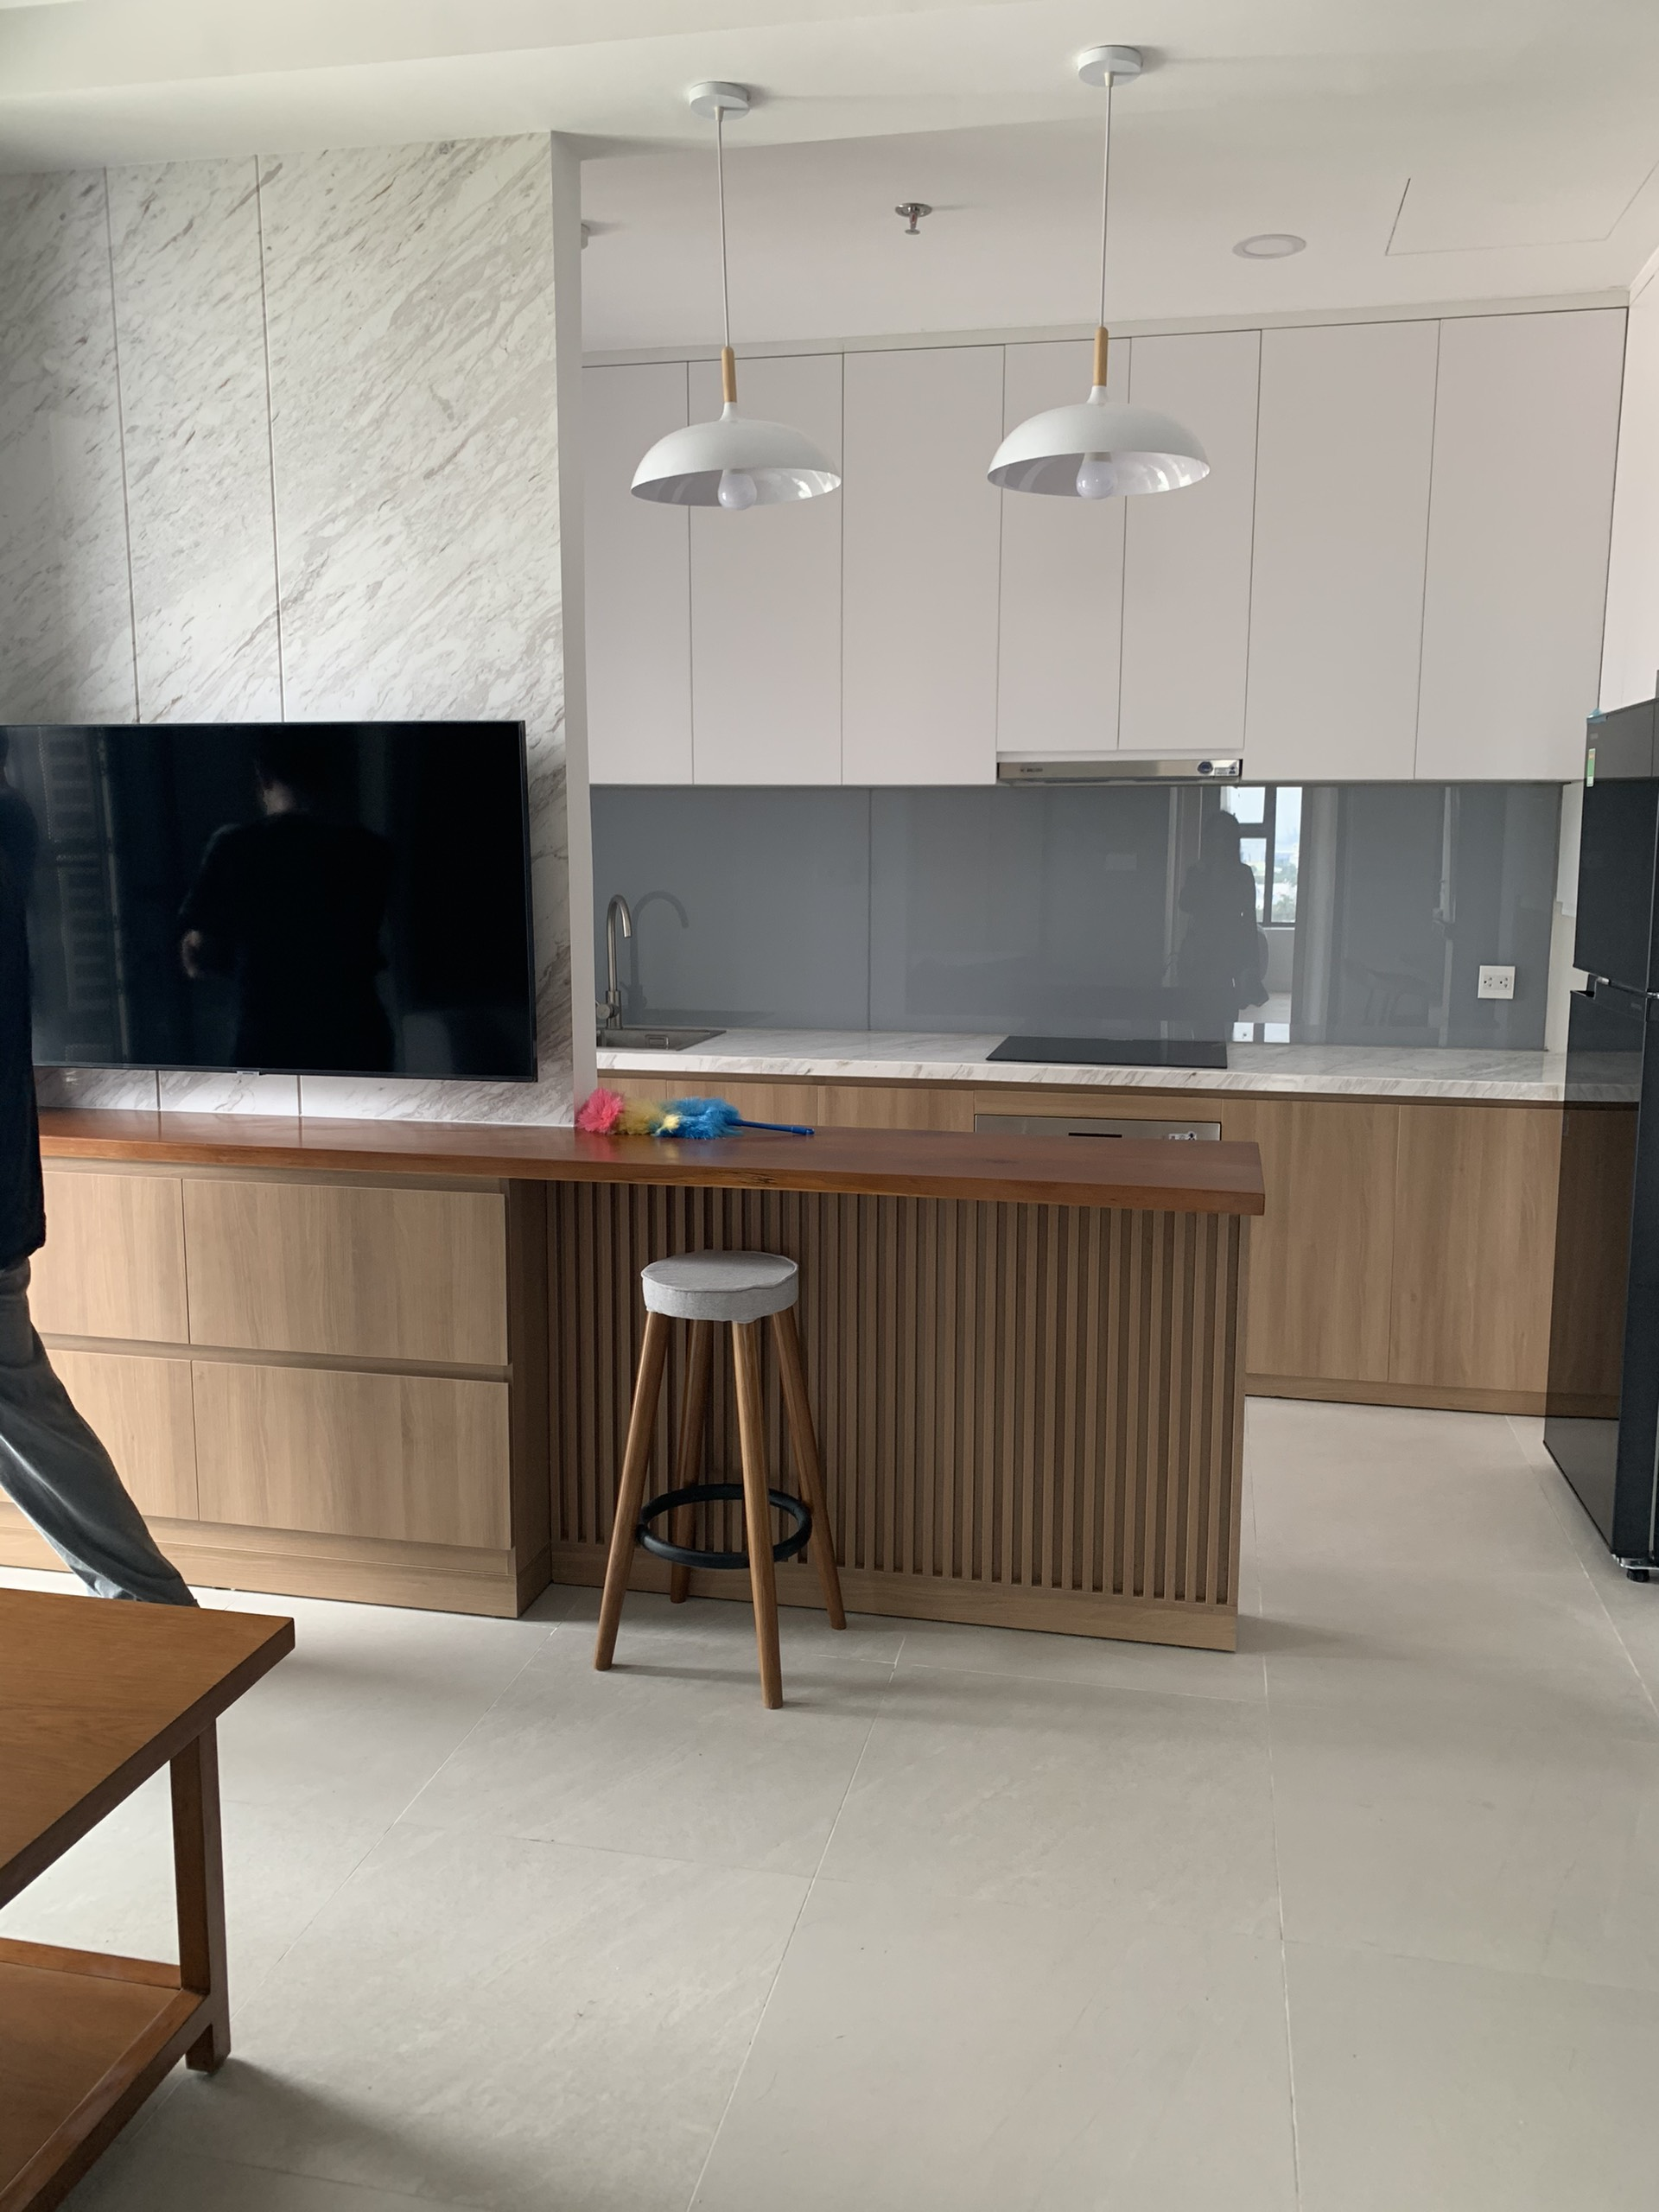 Hung Phuc 2 for rent 3 bedrooms